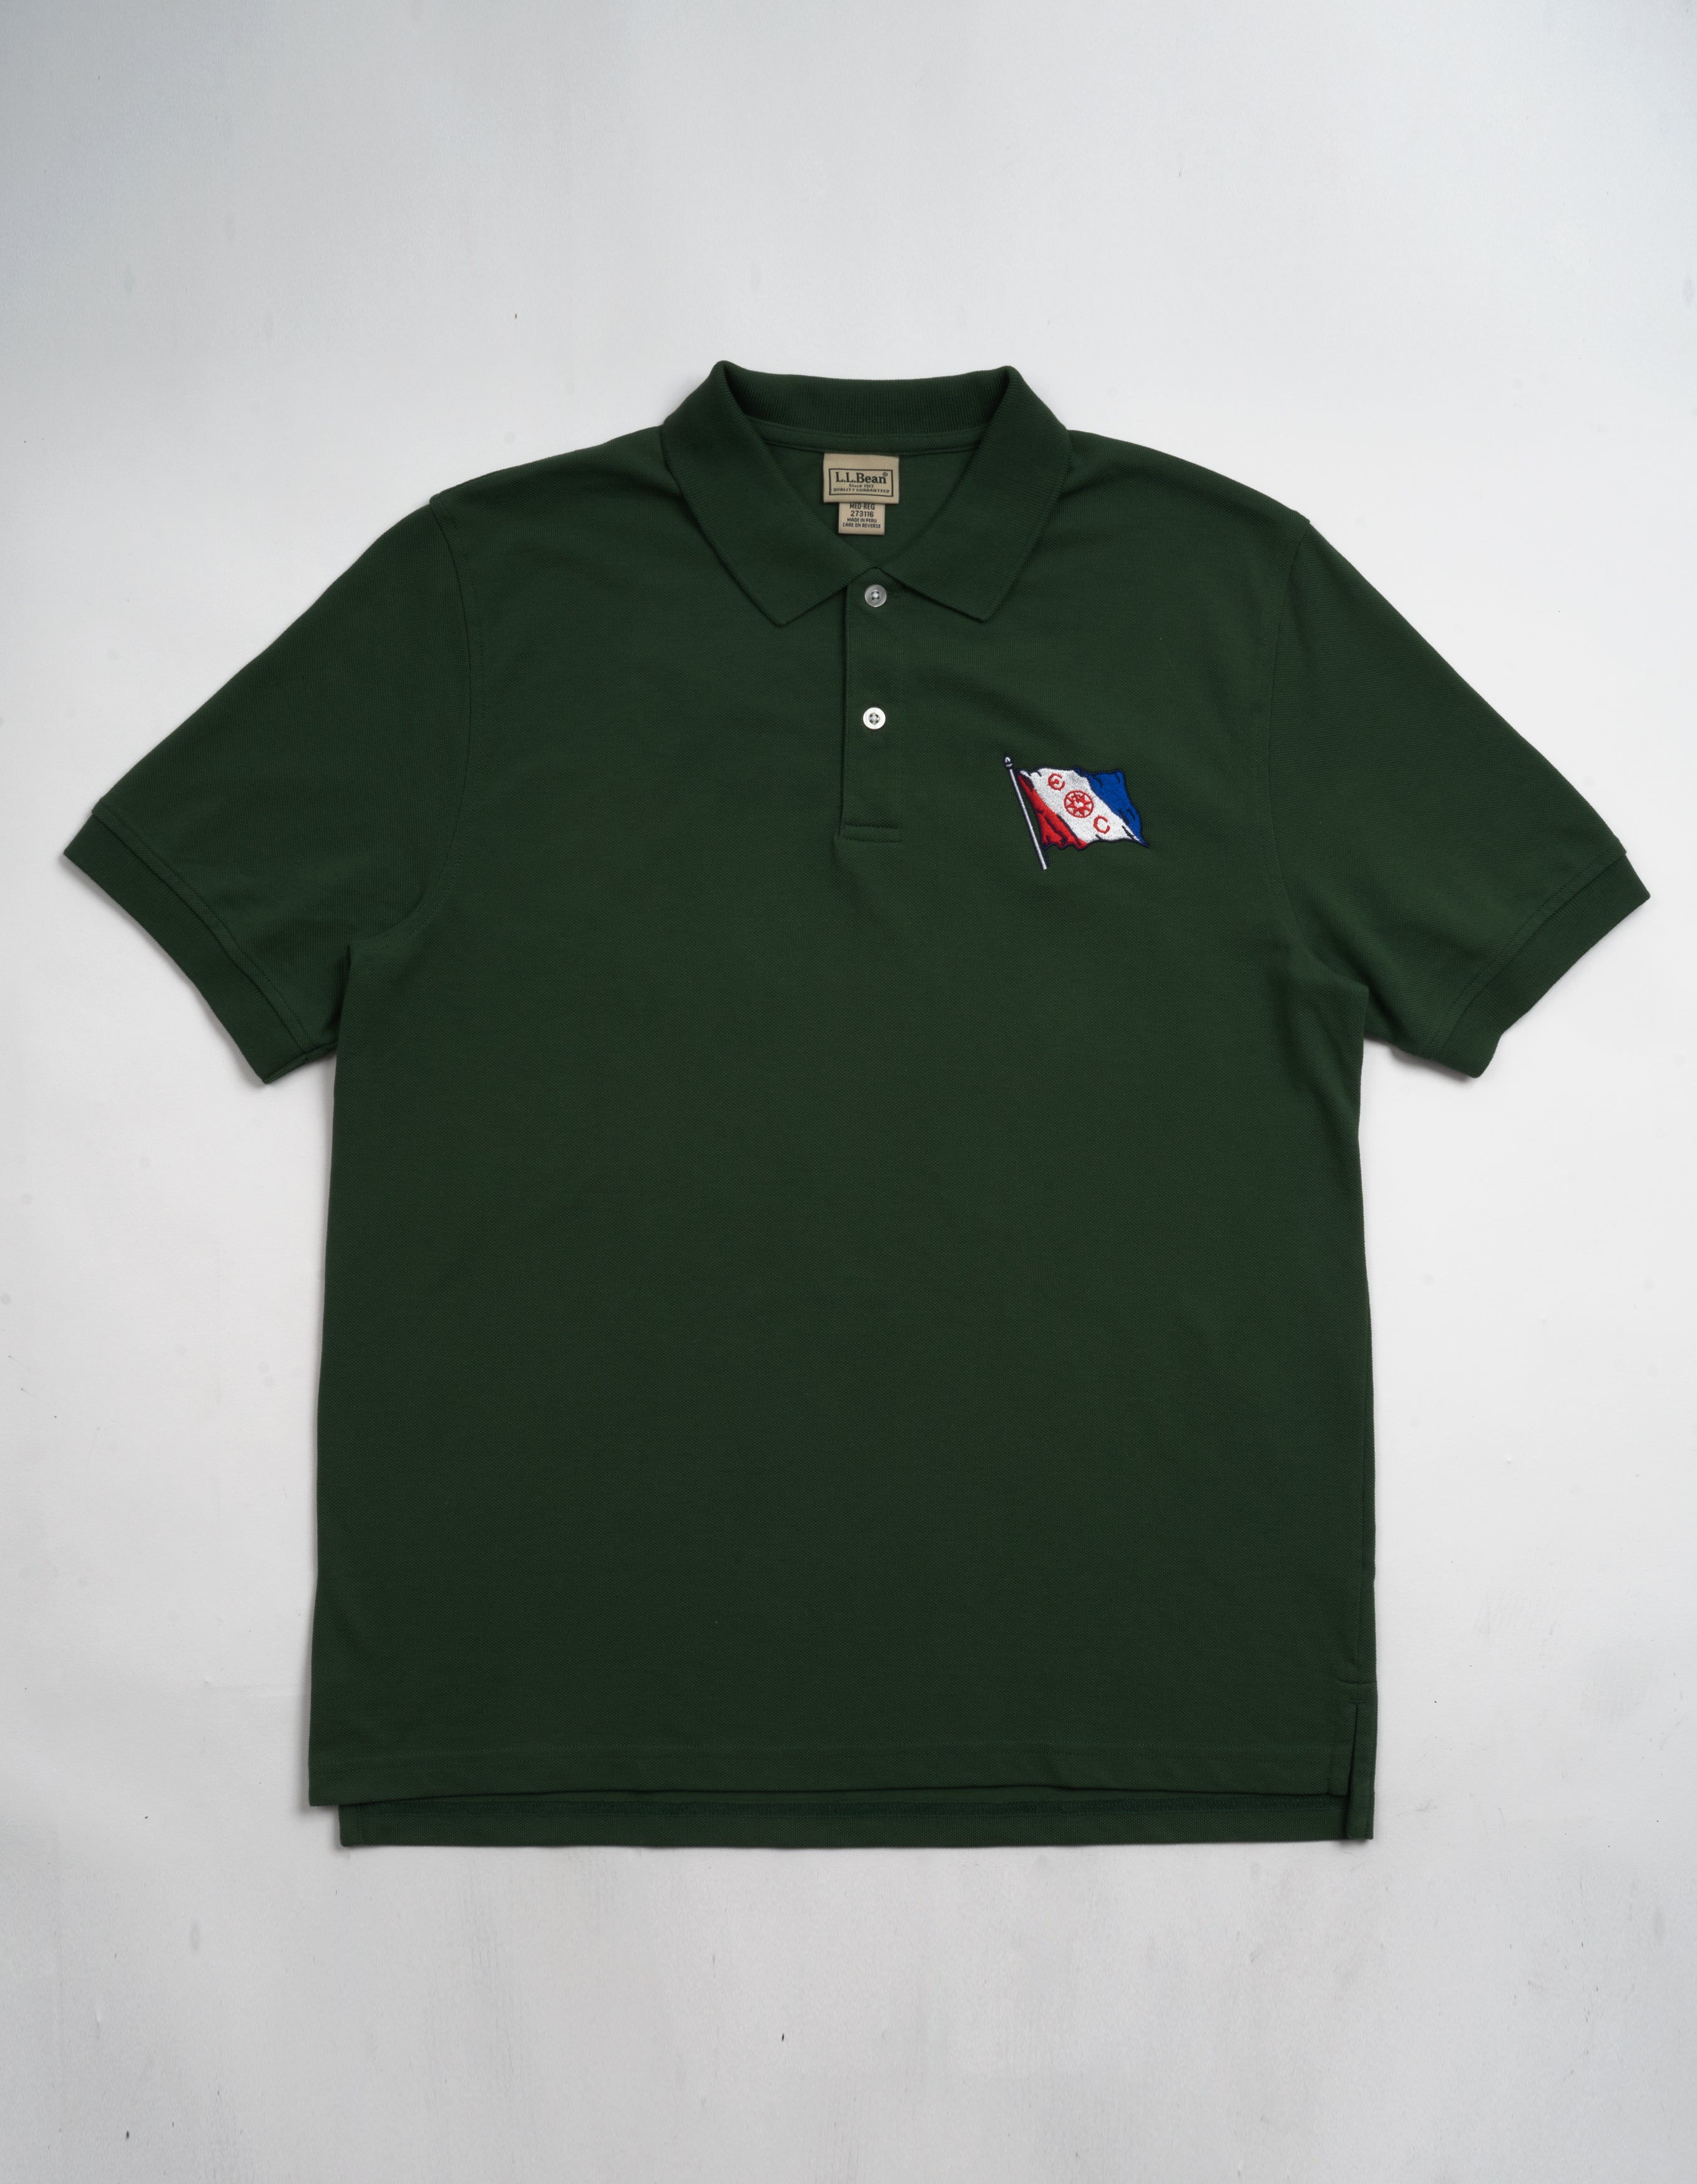 L.L. Bean Polo Shirt in Forest Green